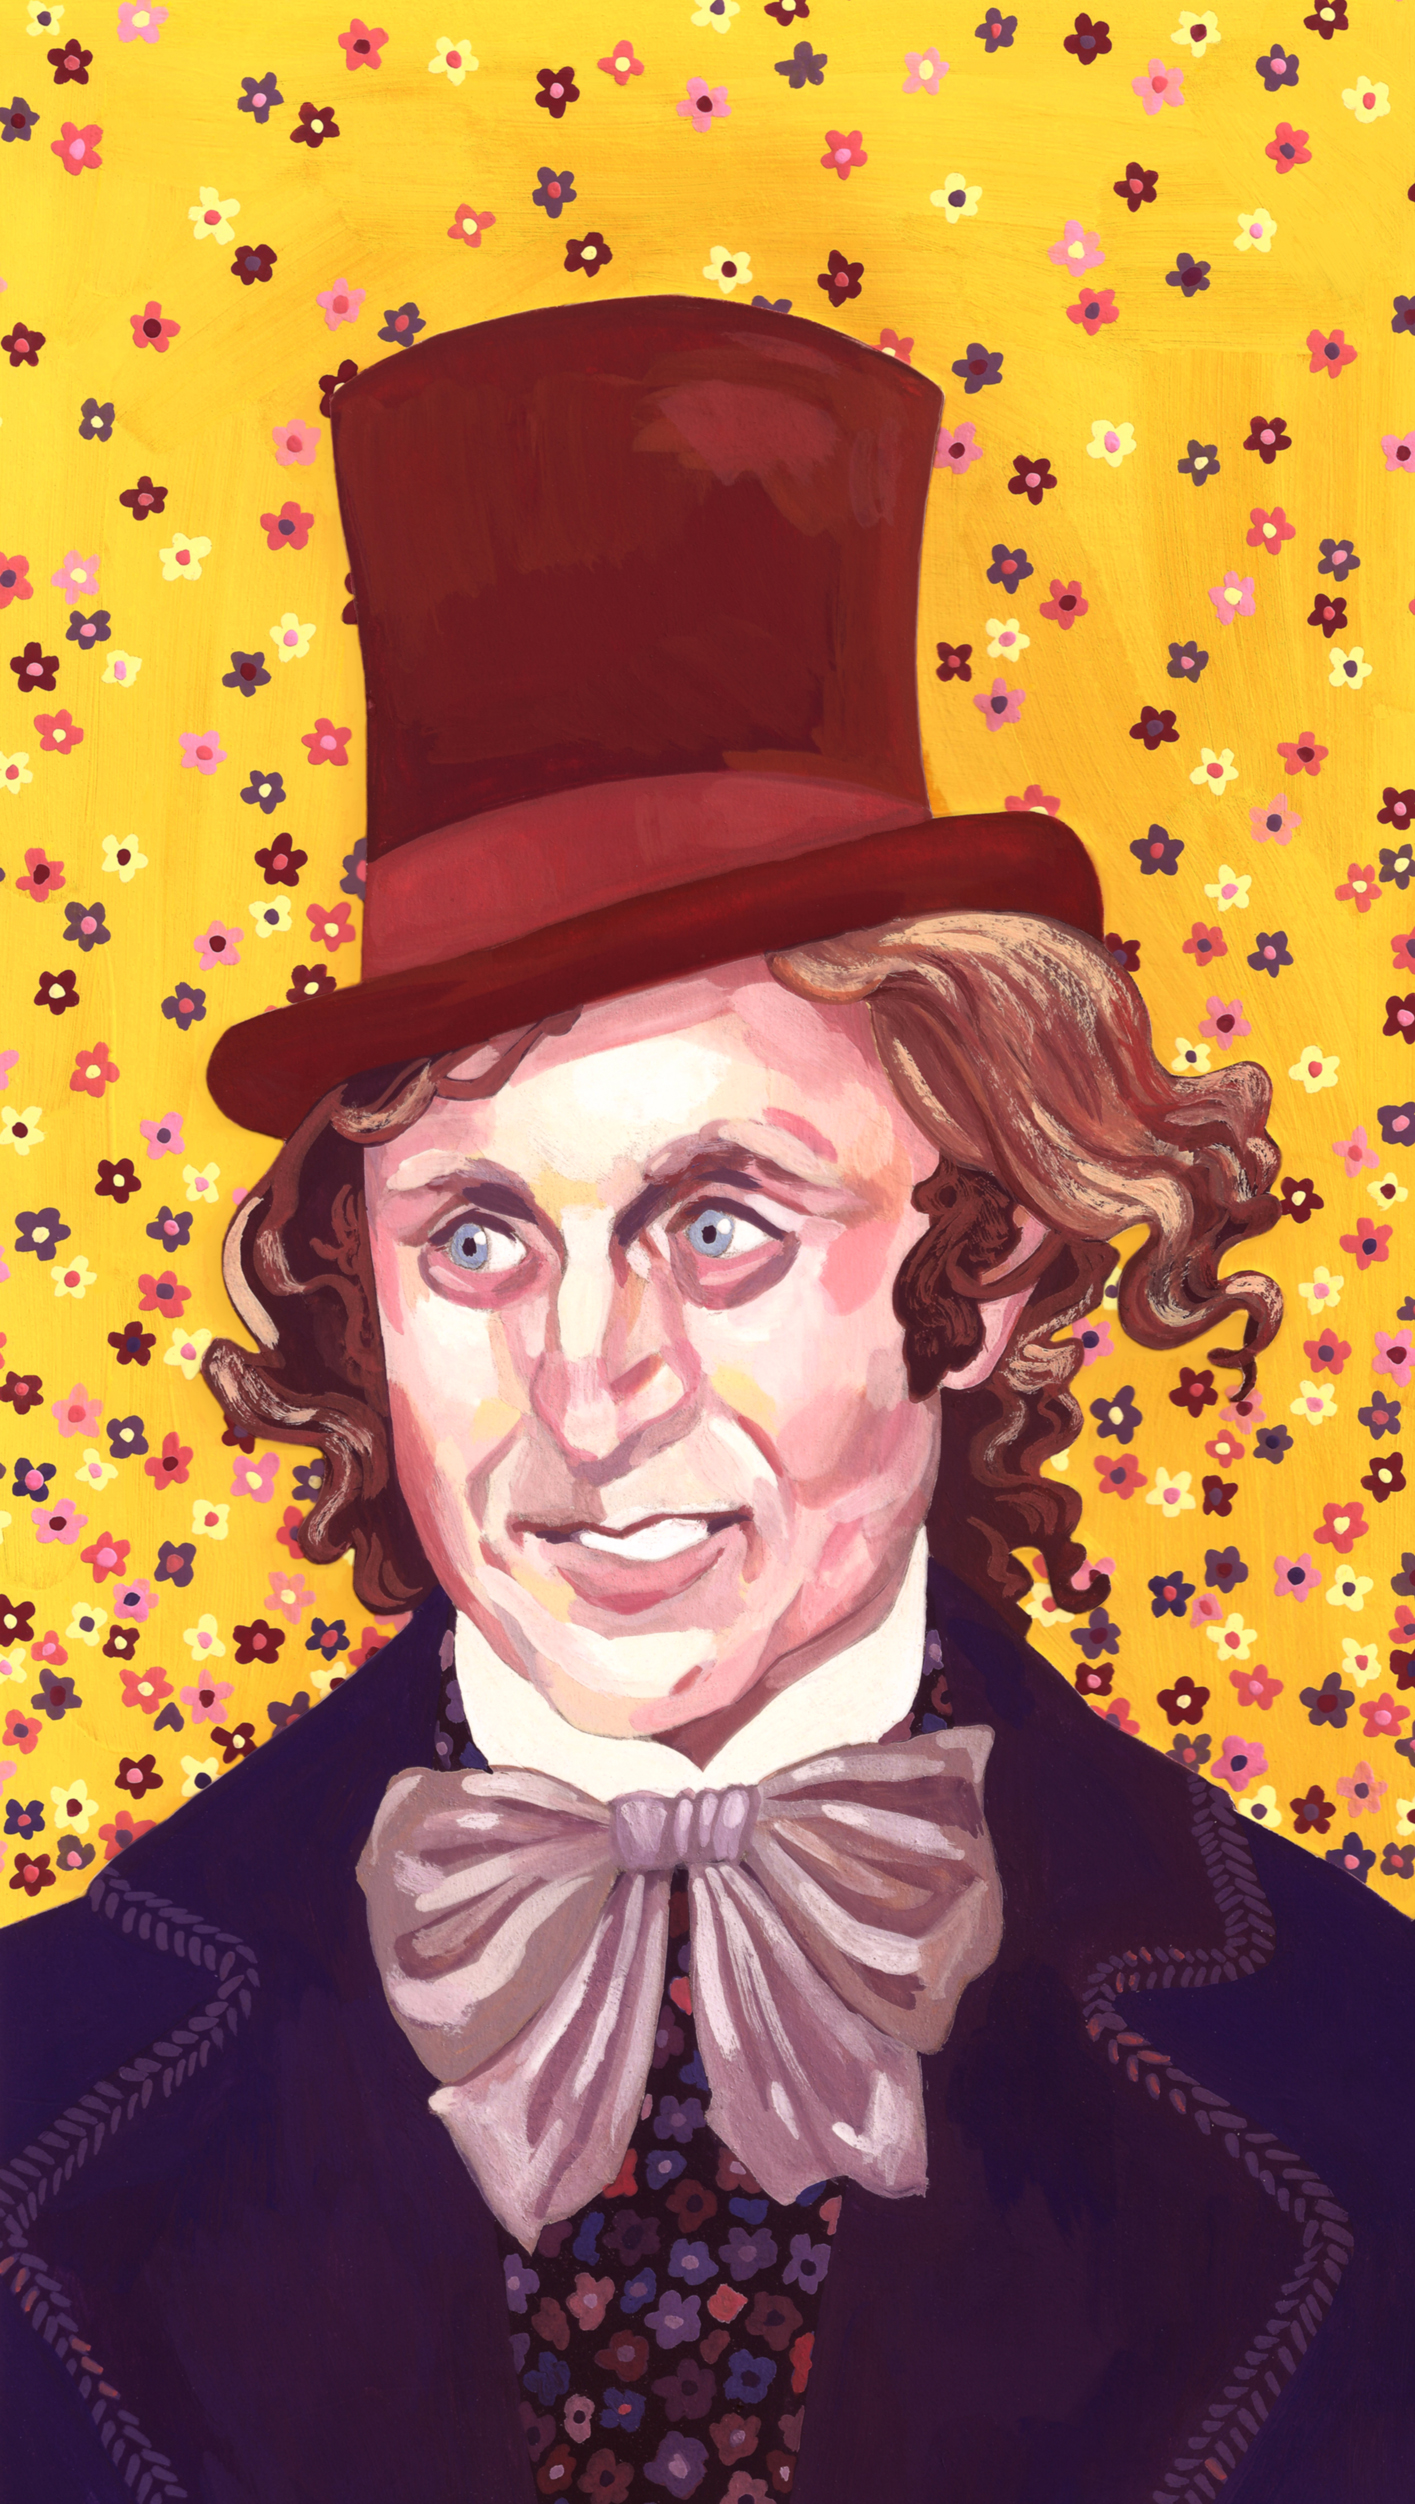 Gene Wilder as Willy Wonka  gouache, 2014/2018